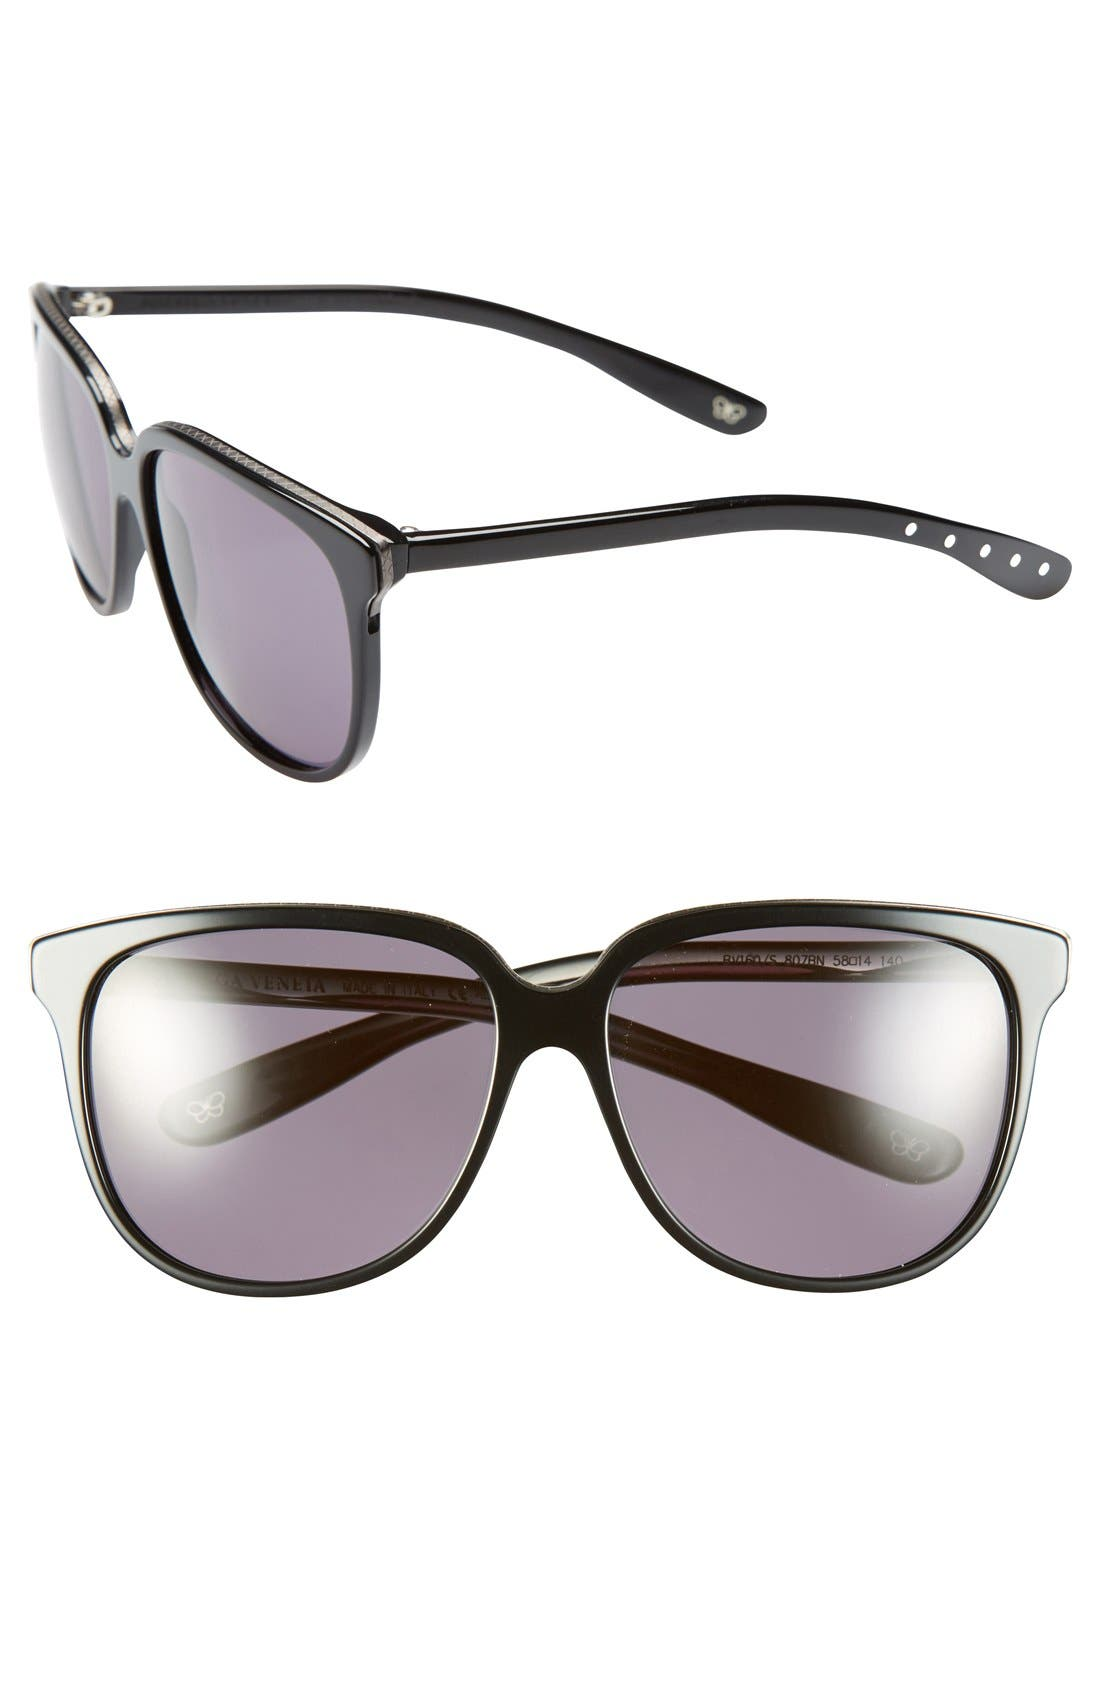 Alternate Image 1 Selected - Bottega Veneta Retro 58mm Sunglasses